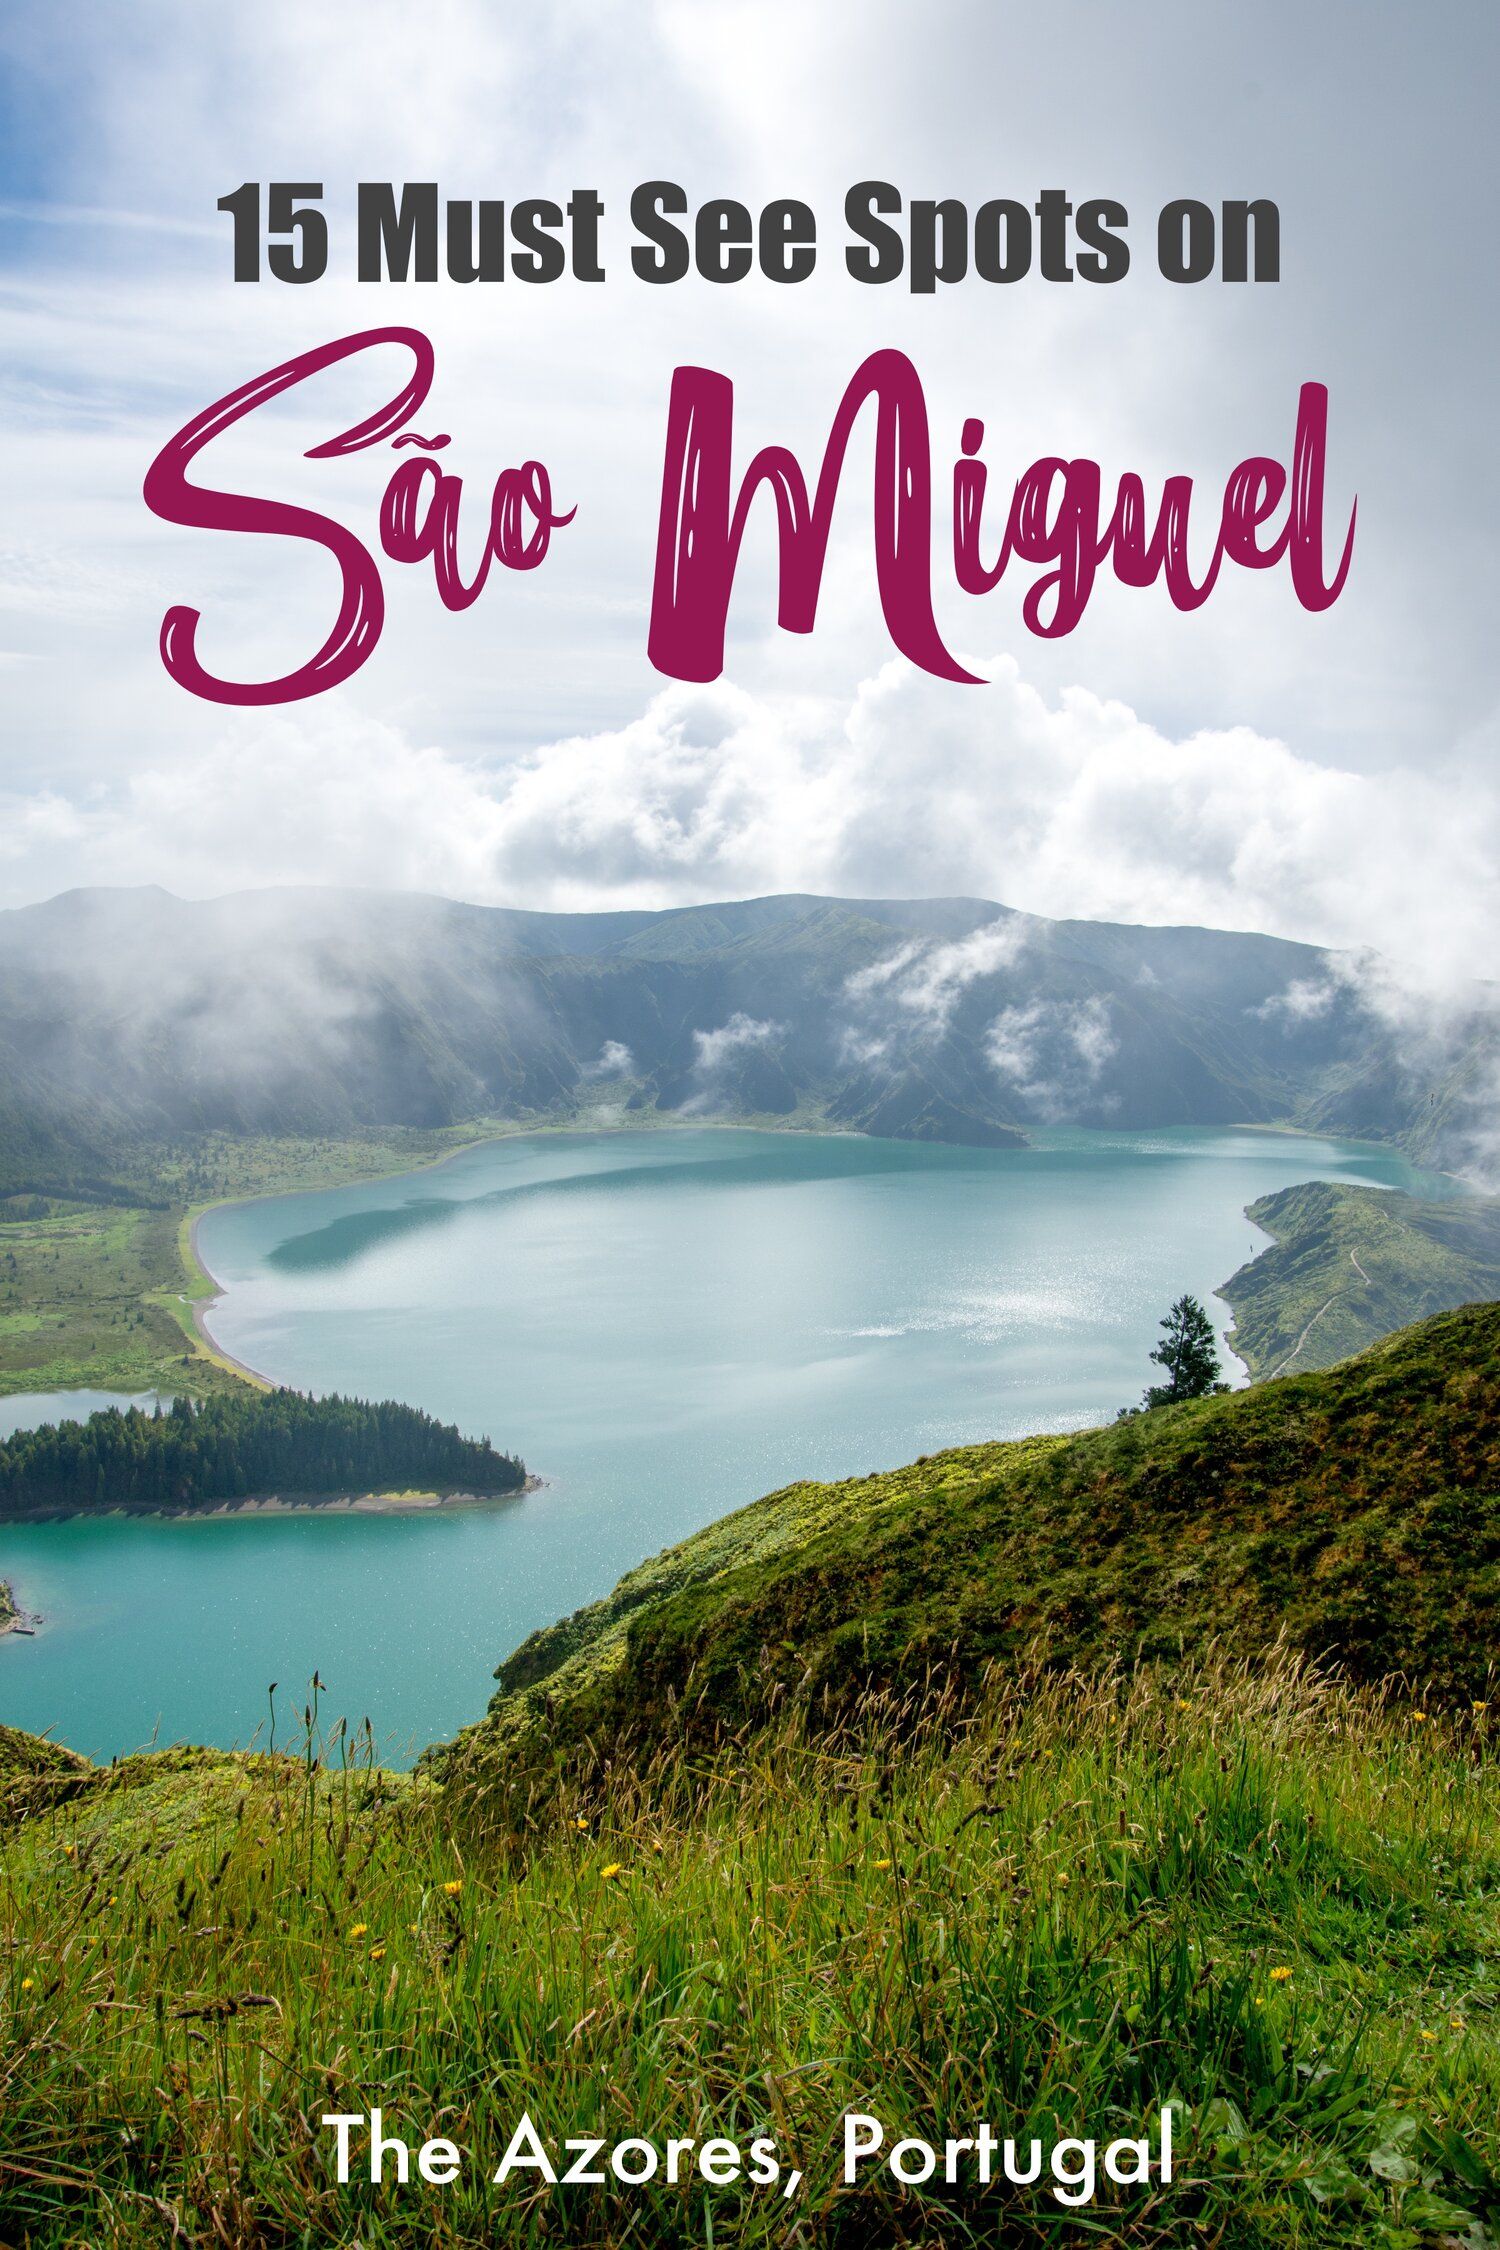 15 Must See Spots to Visit on Sao Miguel Island in the Azores, Portugal.  Sao Miguel is a gorgeous volcanic island with amazing diverse sights #saomiguel #azores #portugal #europe